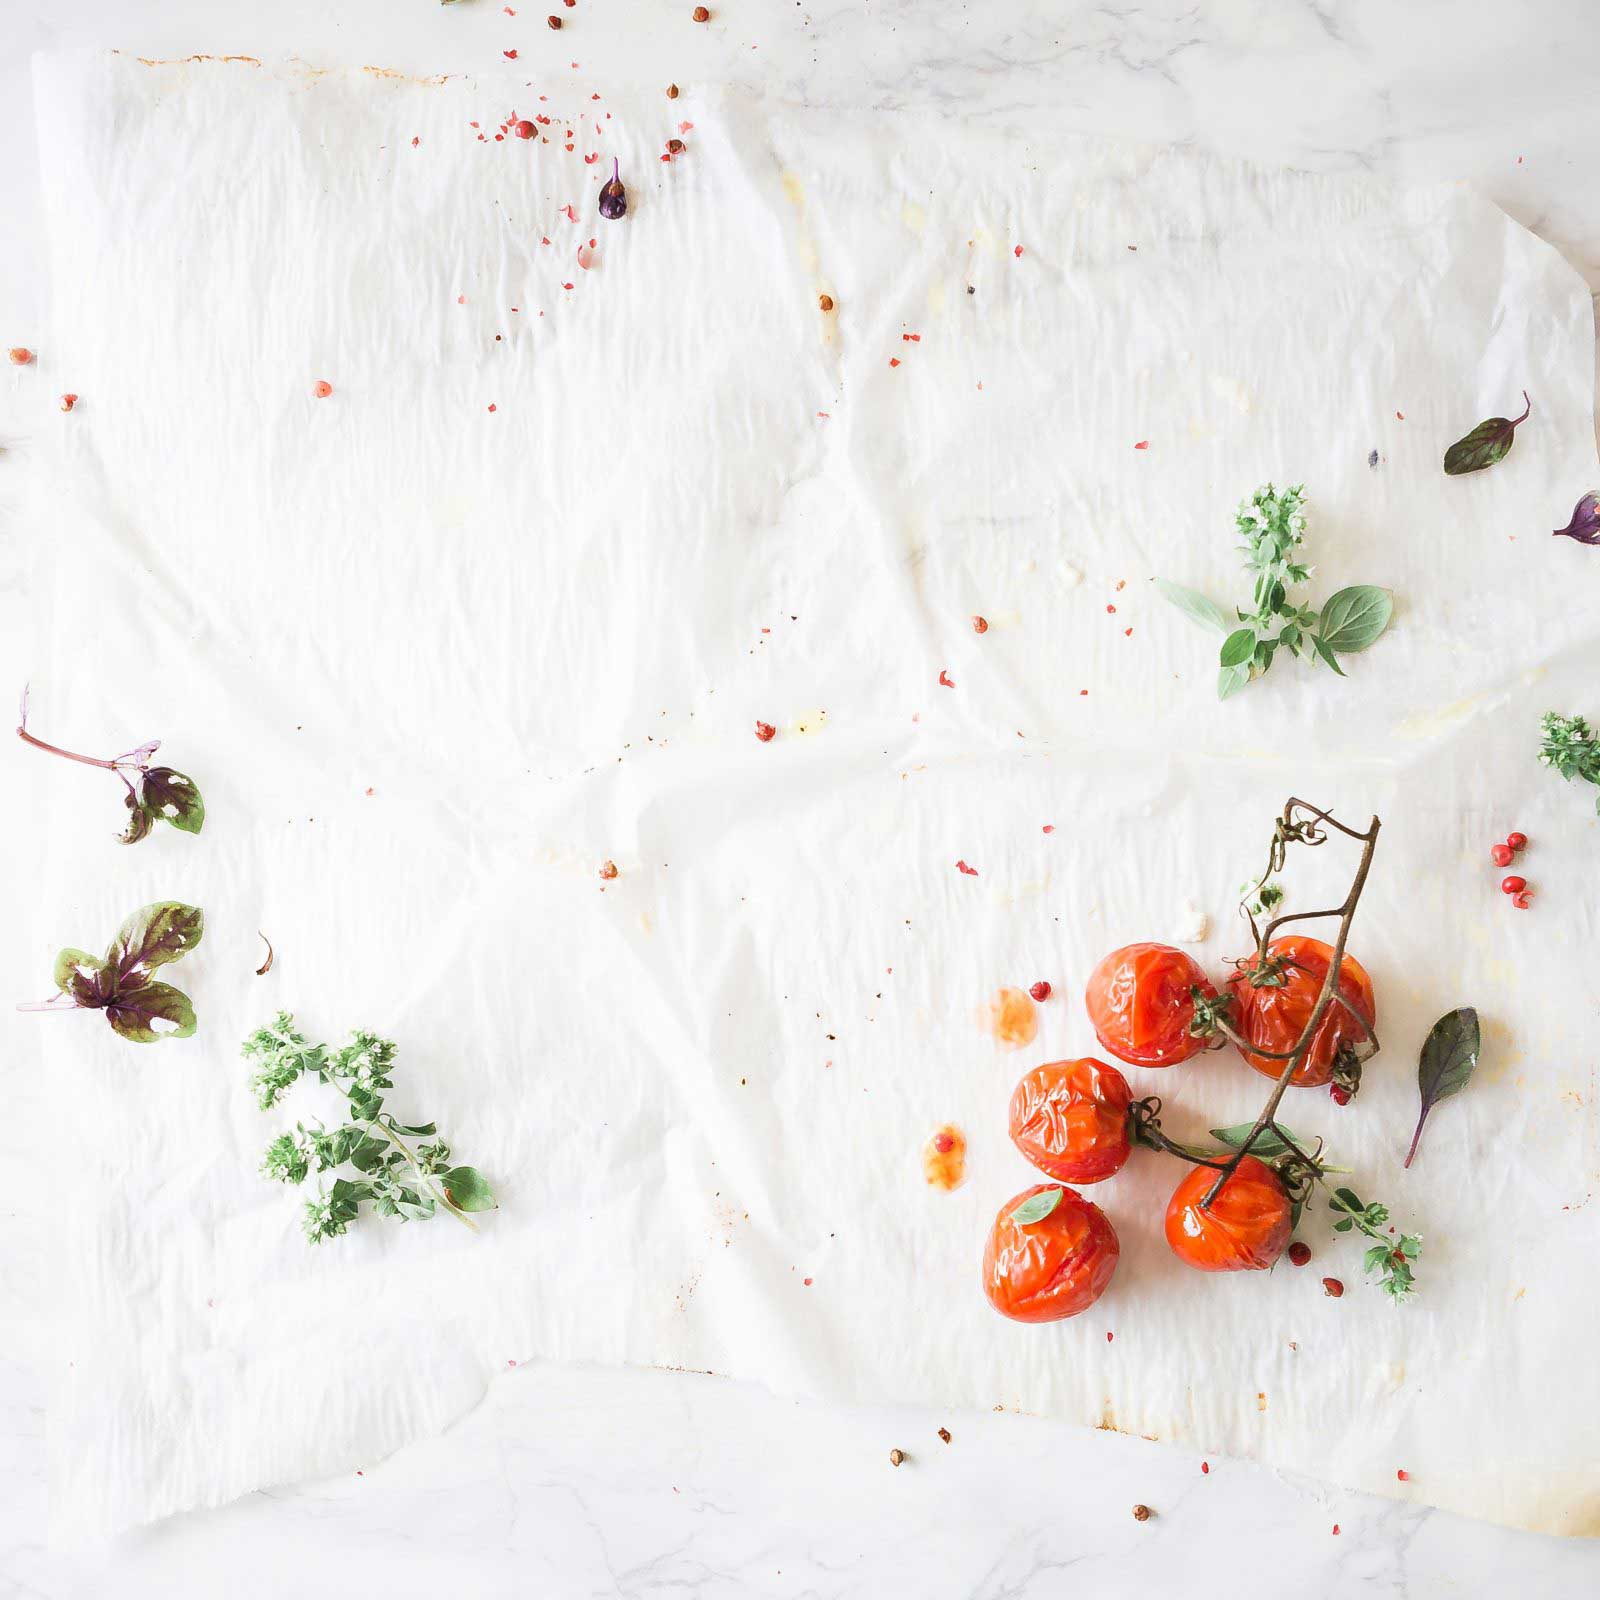 Tomatoes and herbs on a cloth